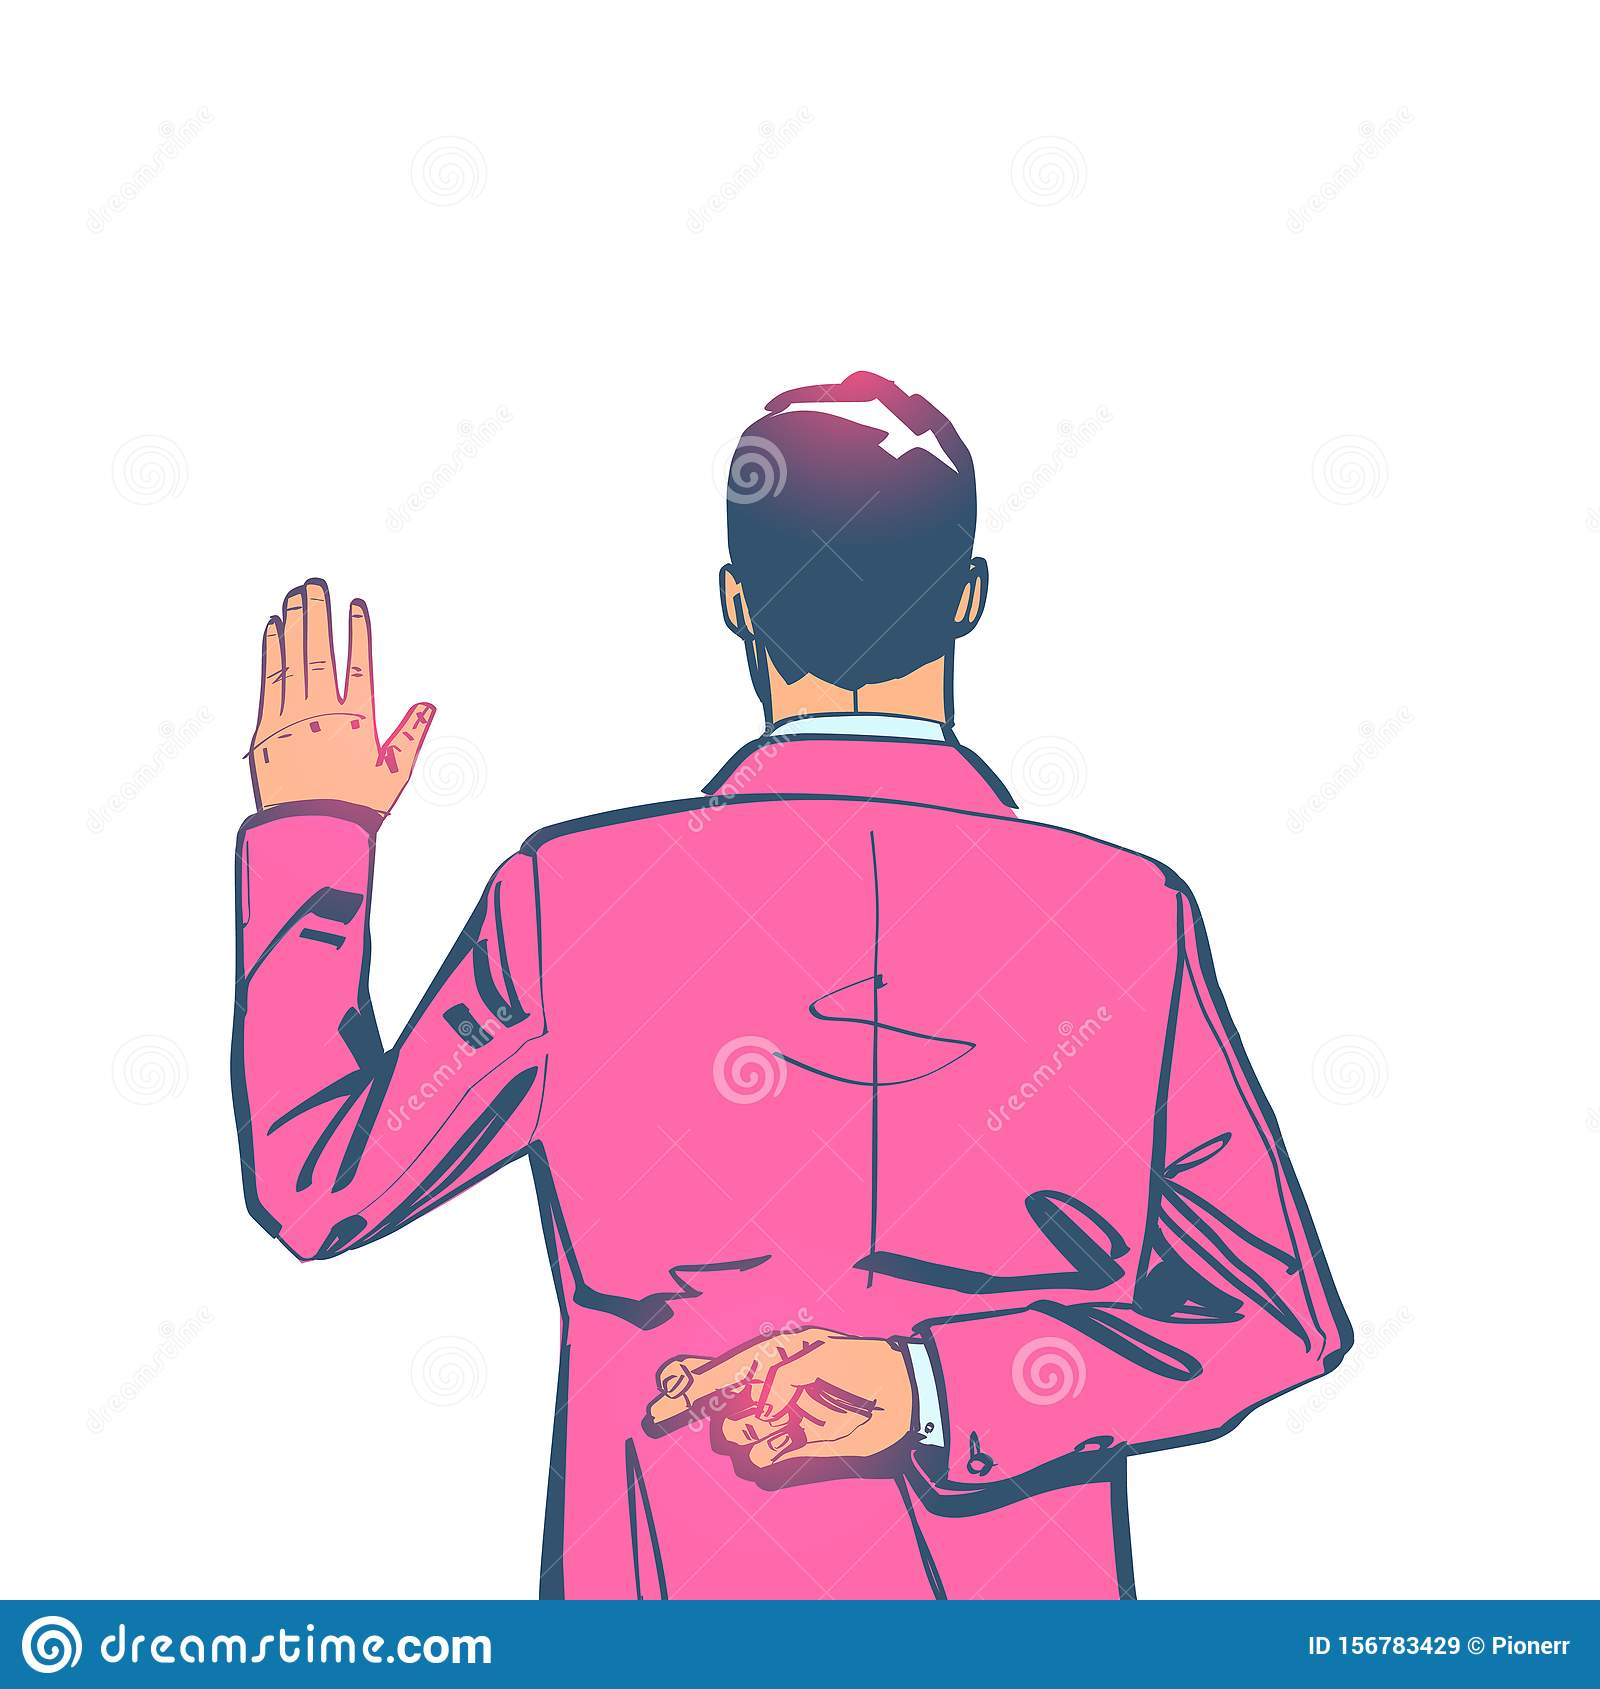 Conference clipart oath ceremony, Conference oath ceremony Transparent FREE  for download on WebStockReview 2020